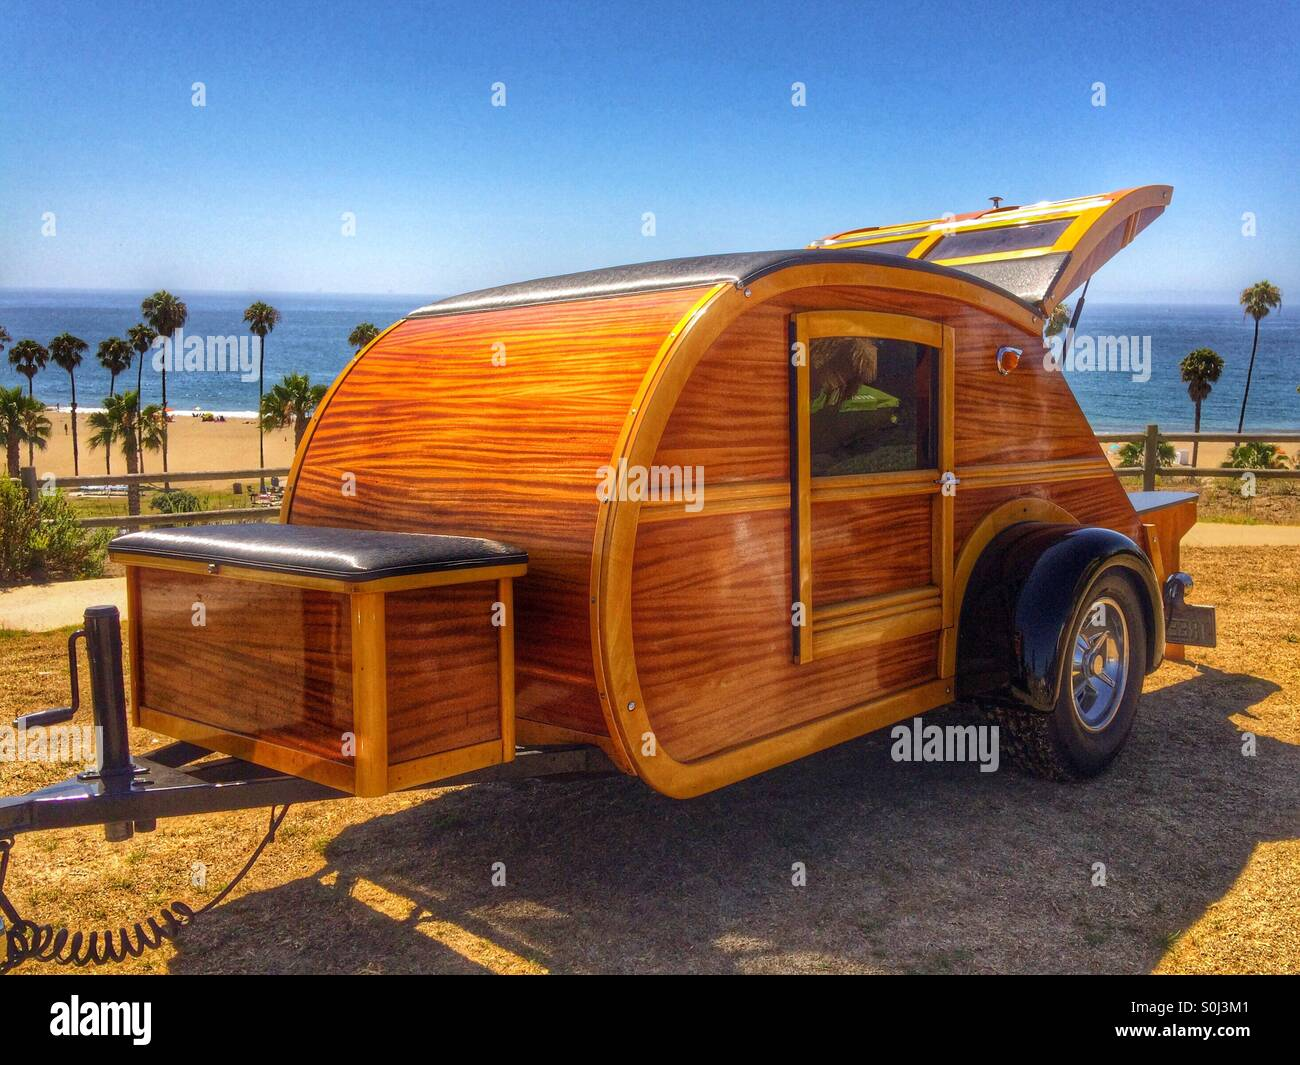 A 1948 Wooden Teardrop Trailer Camper In Santa Barbara